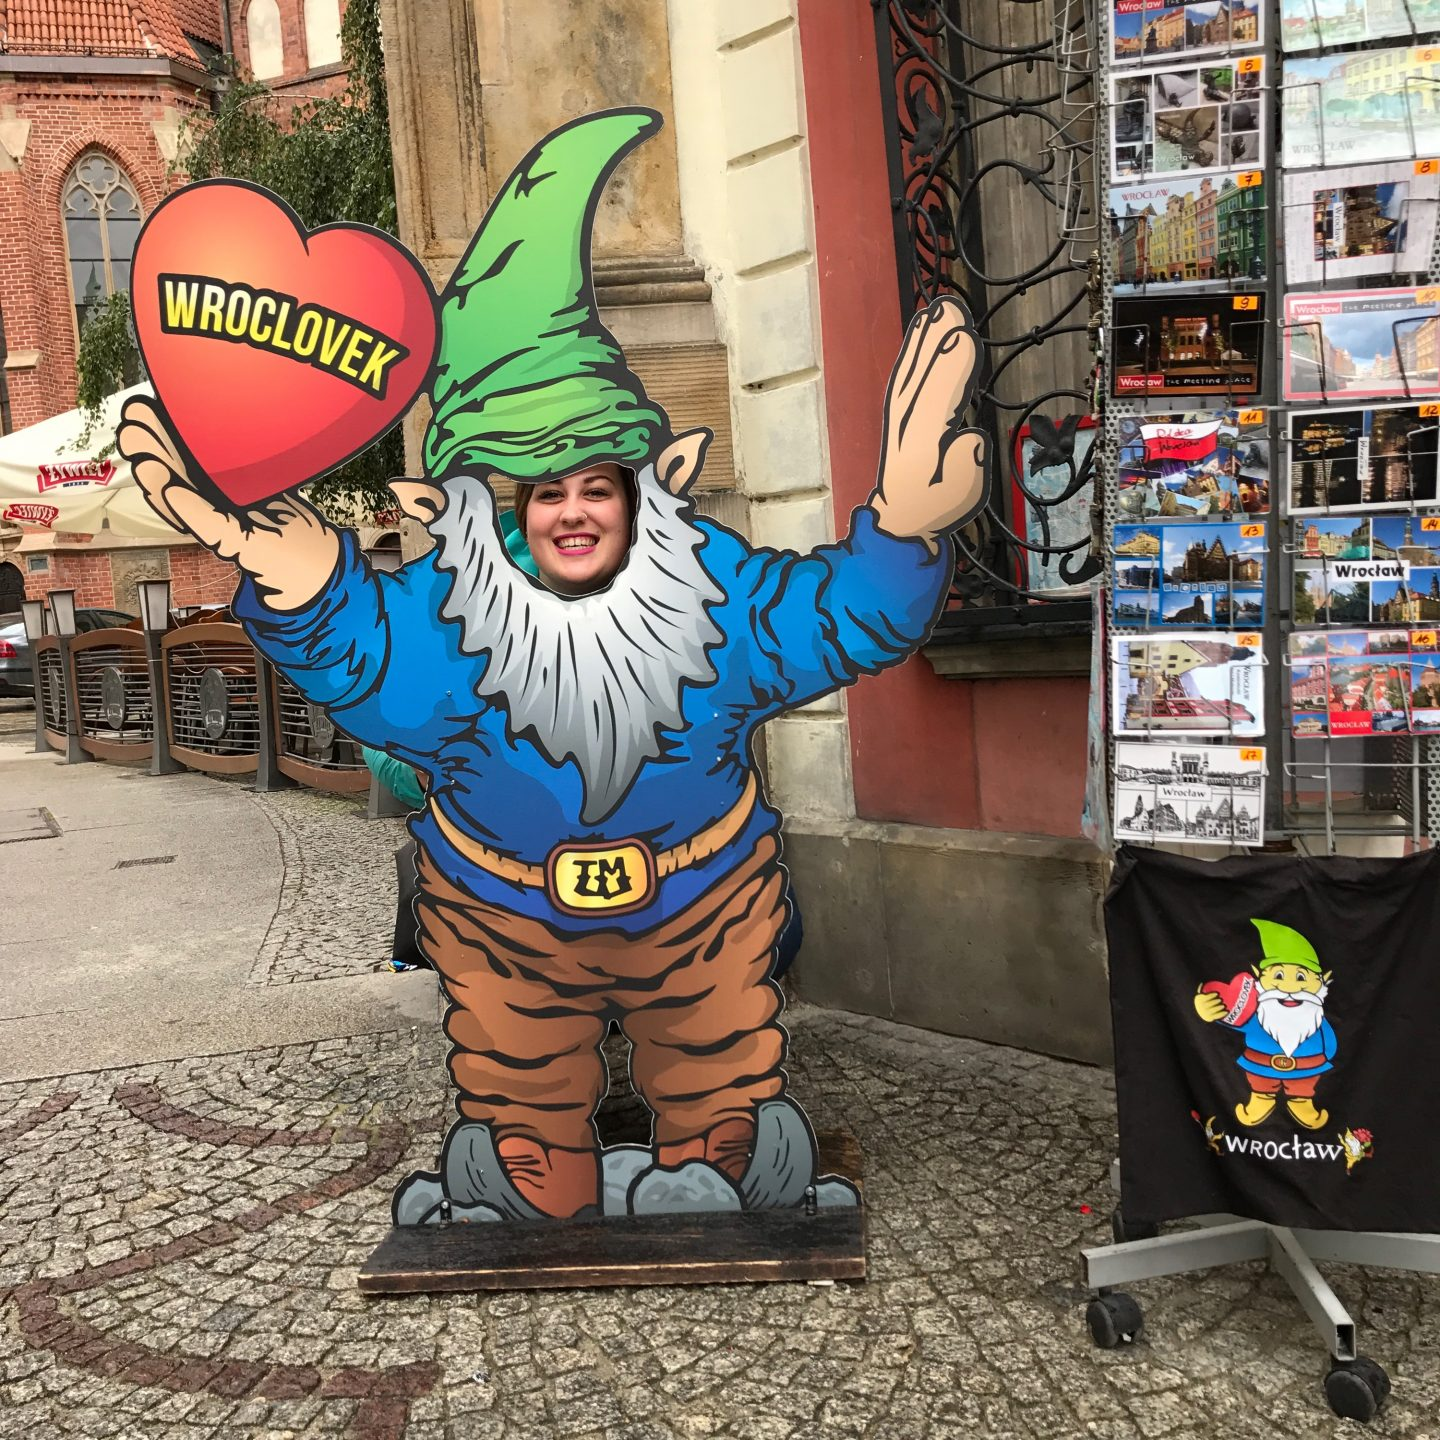 Wroclaw- The City of Gnomes